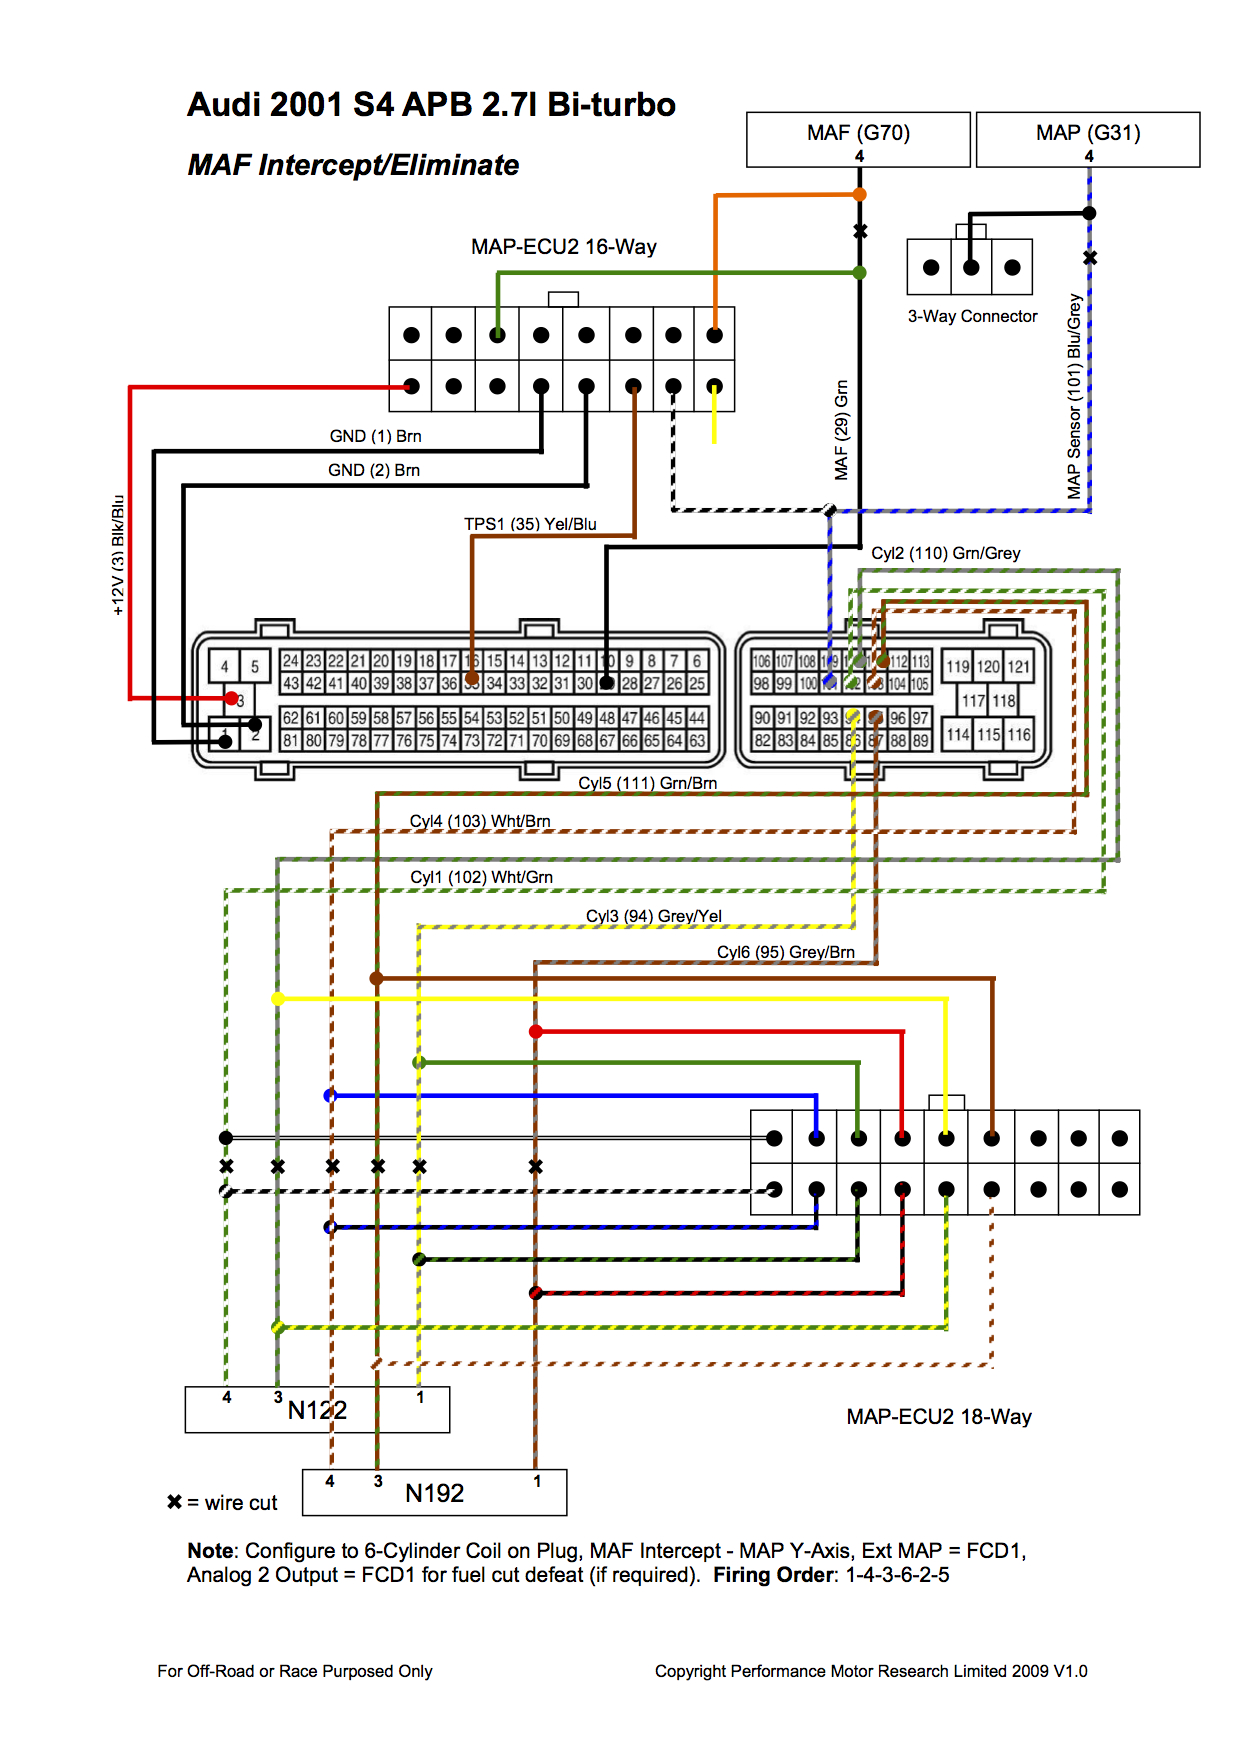 Audi S4 20011 ecu wiring diagram paccar ecu wiring diagram \u2022 wiring diagrams j 2000 Chrysler 300M Wiring Diagram at virtualis.co